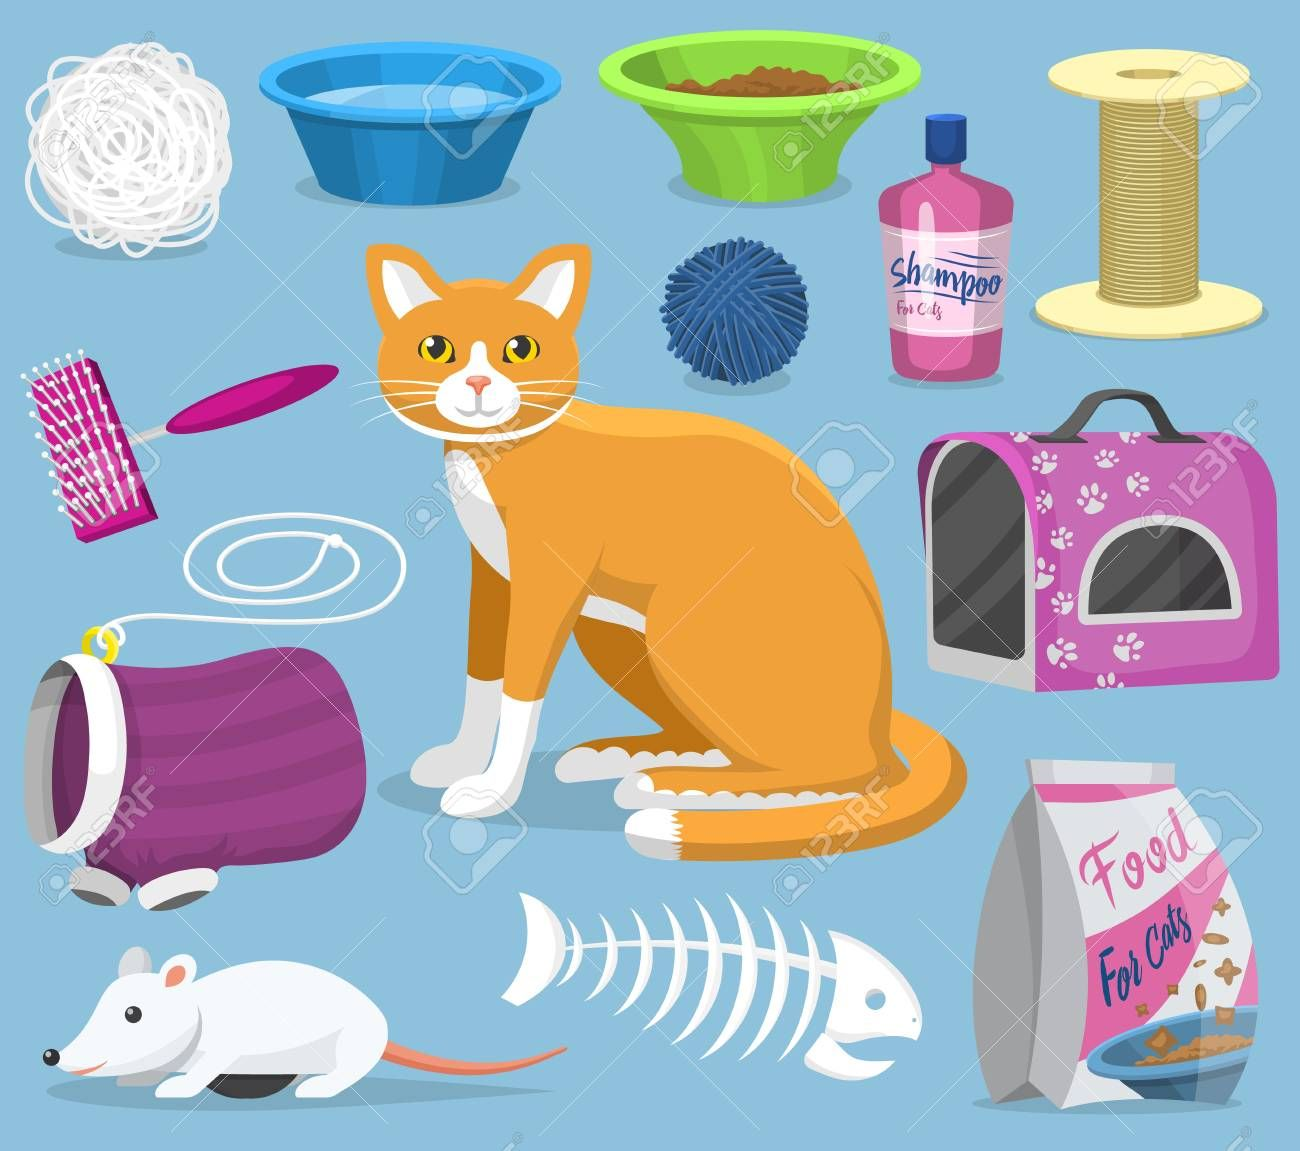 Cat toys vector pets accessories for pussycats care or playing kitten bowl and animal grooming tools kitty brush illustration feline set isolated on background , #SPONSORED, #care, #pussycats, #playing, #bowl, #kitten